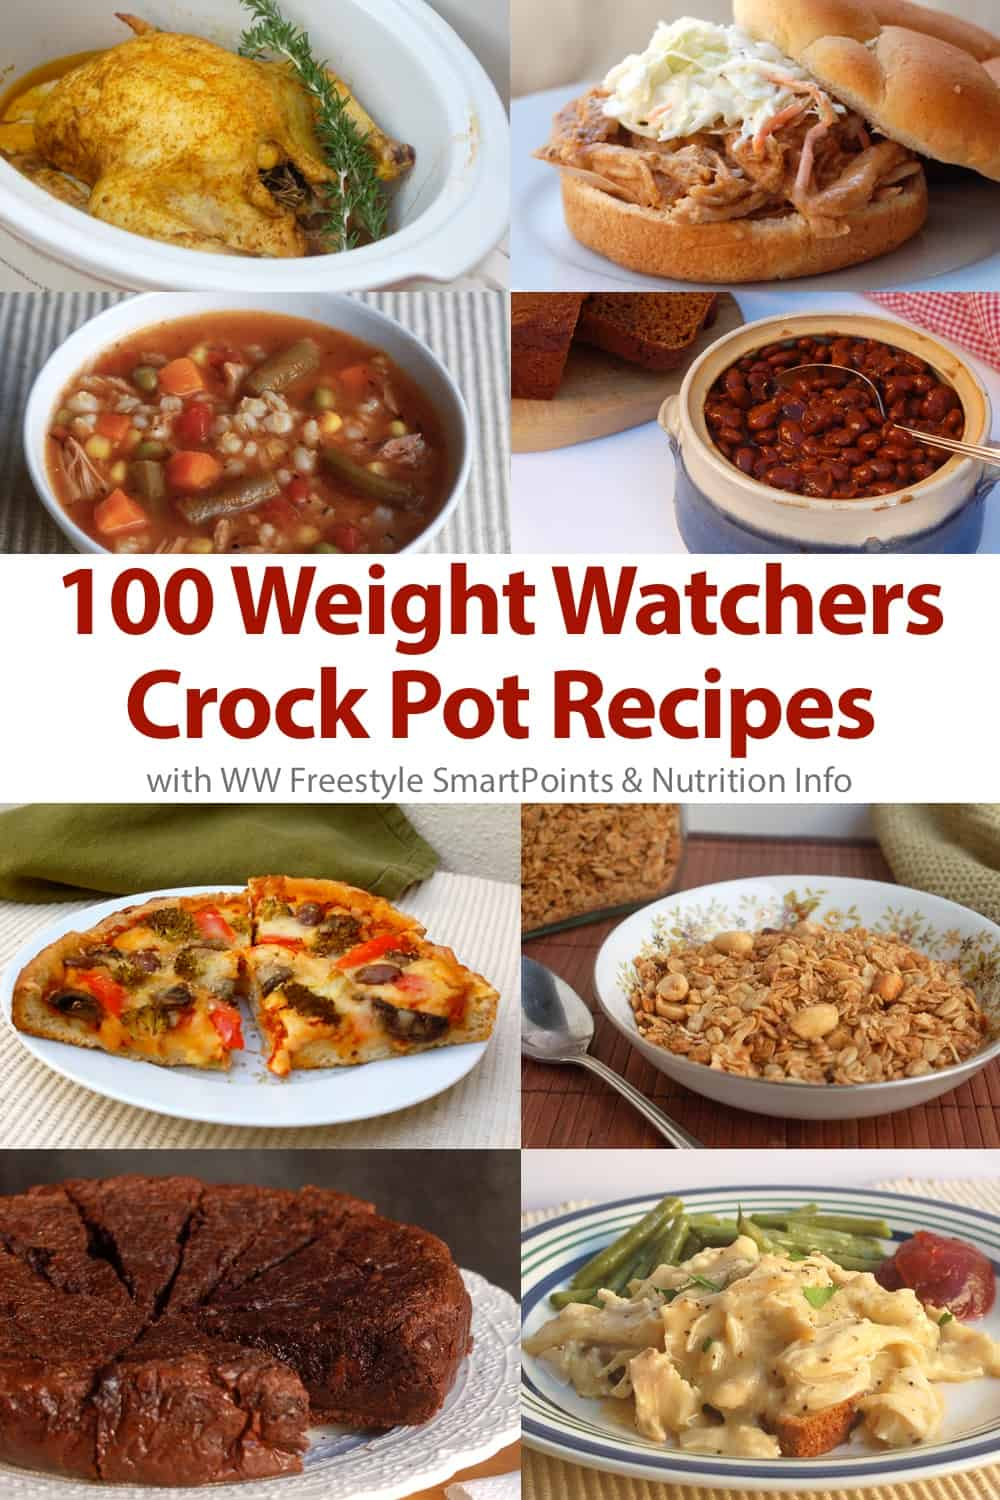 100 Favorite Weight Watchers Slow Cooker Recipes with Freestyle SmartPoints and Nutritional Information - Dinners, Chicken, Beef, Pork, Soups, Appetizers, Breakfast, Dessert & More #weightwatchersrecipes #easyhealthyrecipes #slowcookerrecipes #slowcooker #crockpot